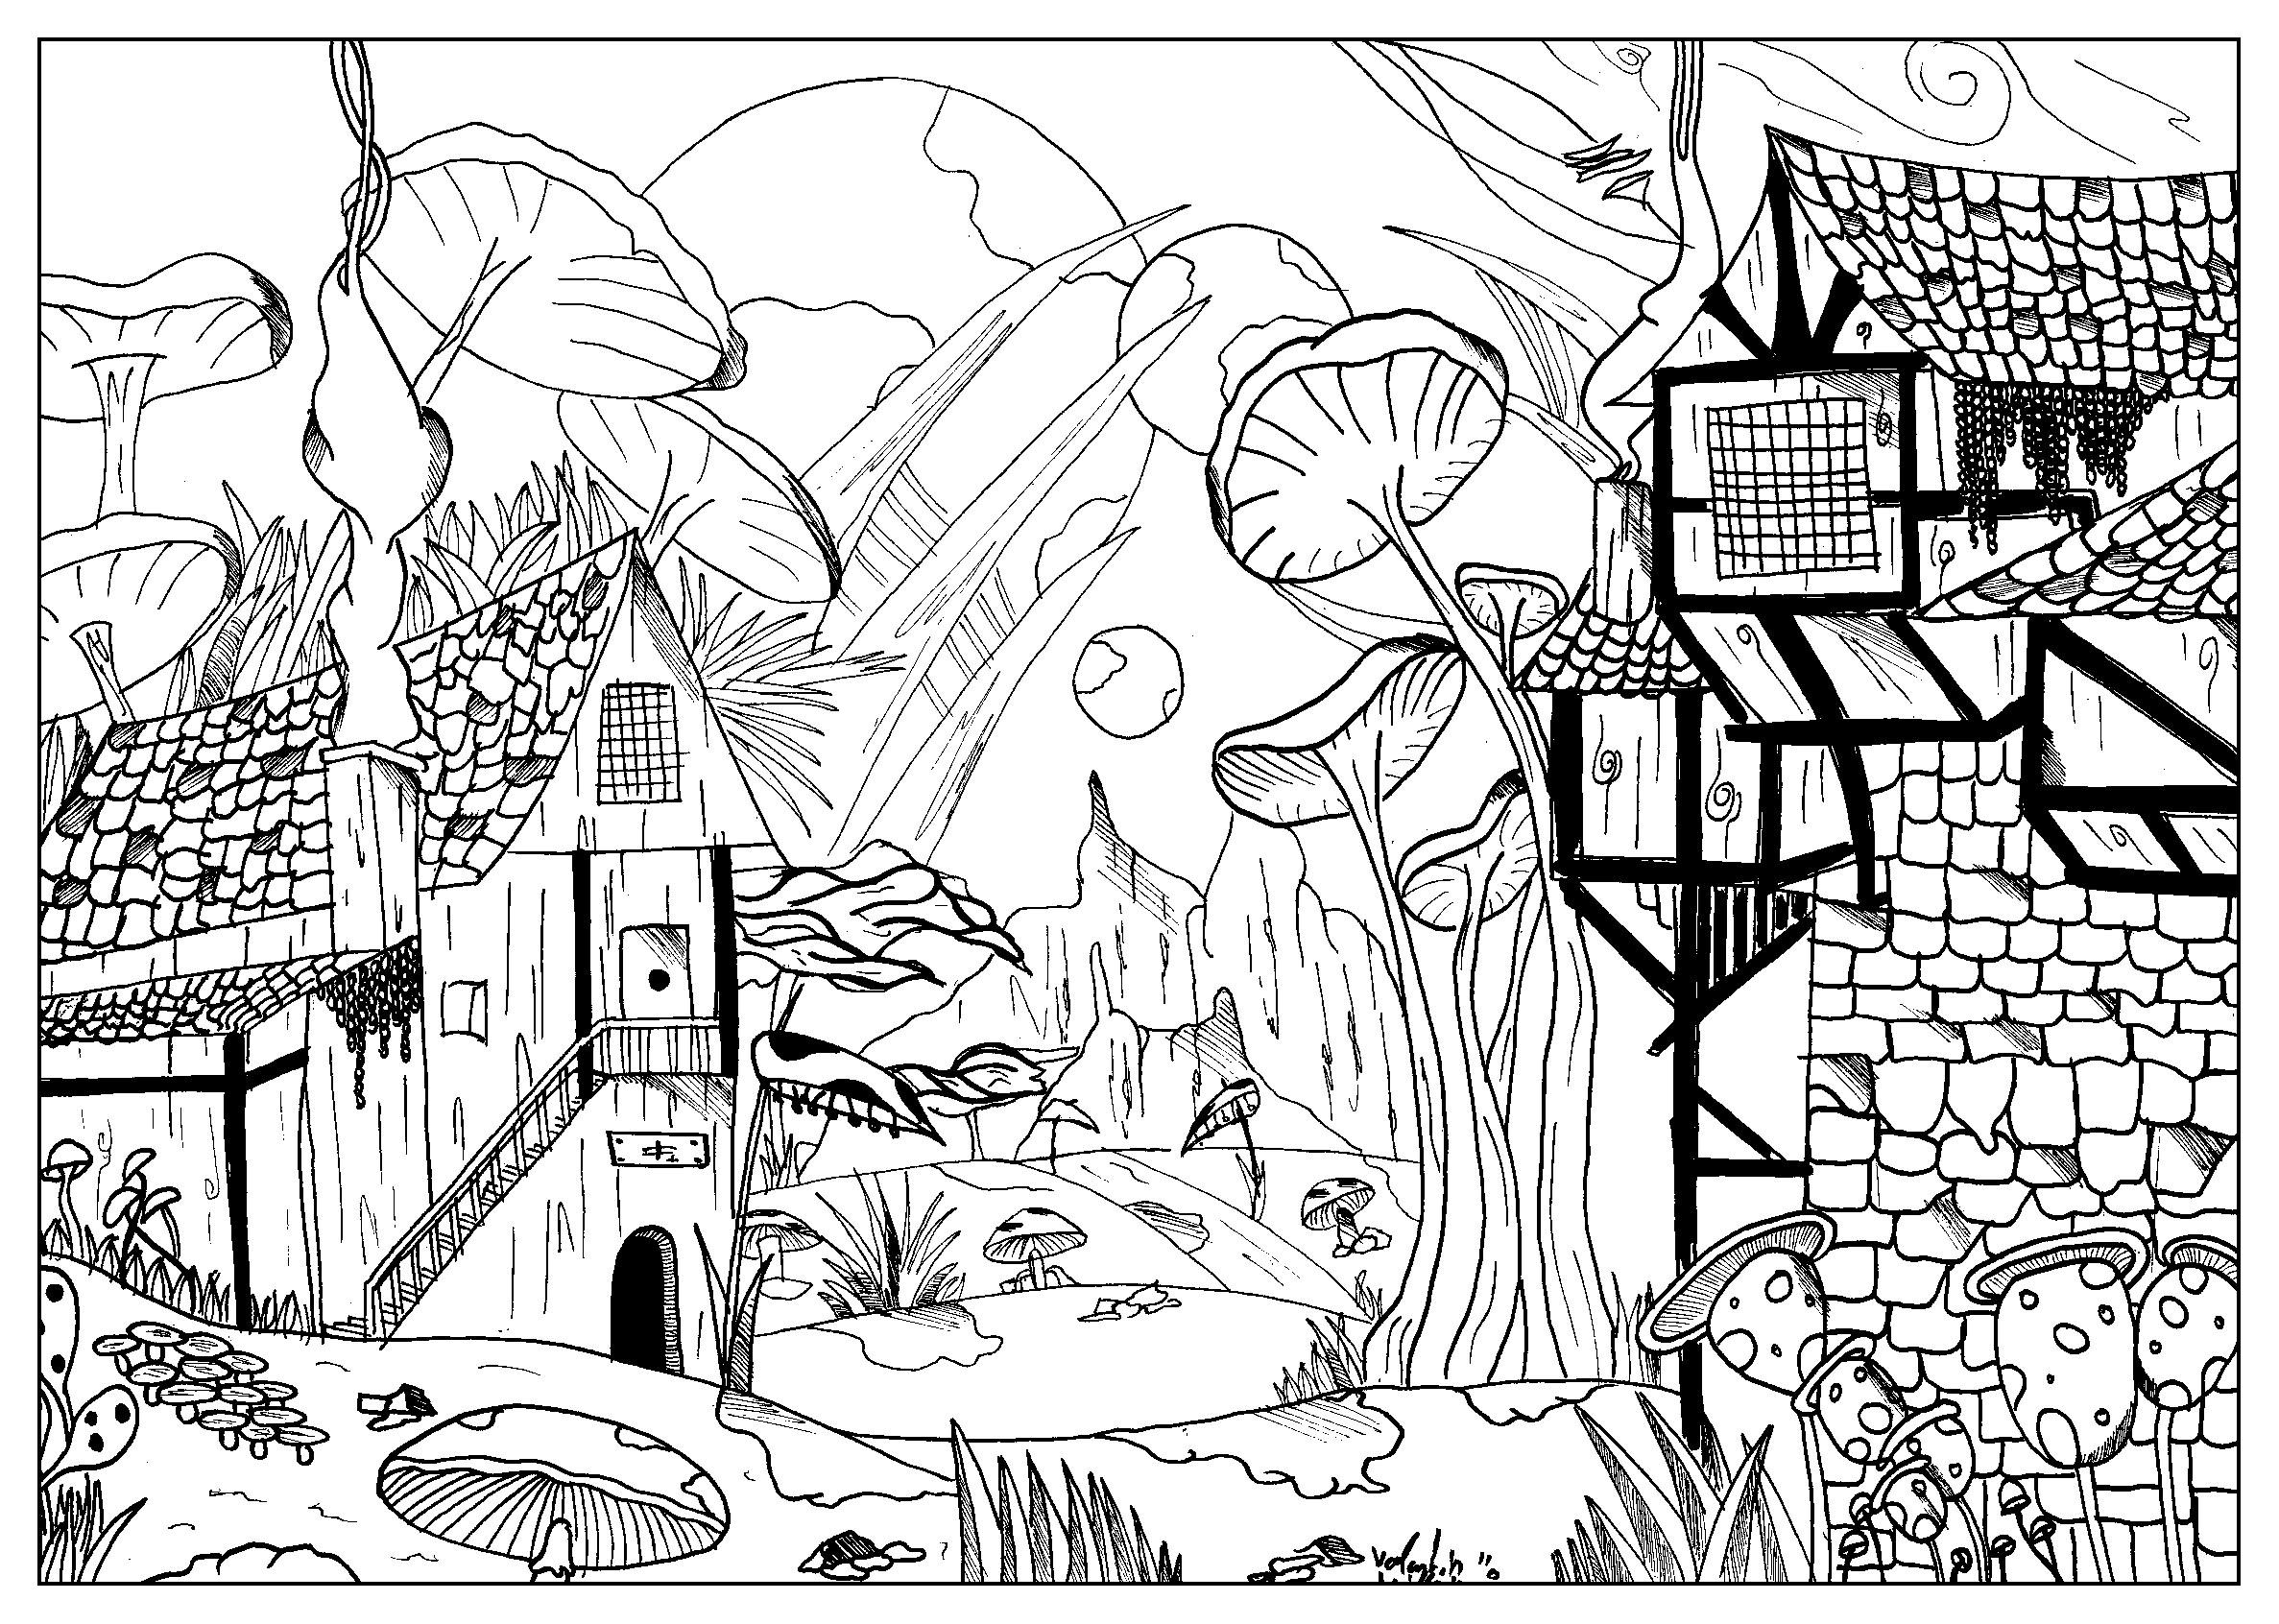 Coloring Page Landscape - Coloring of a small village with giant mushrooms from the gallery myths legends